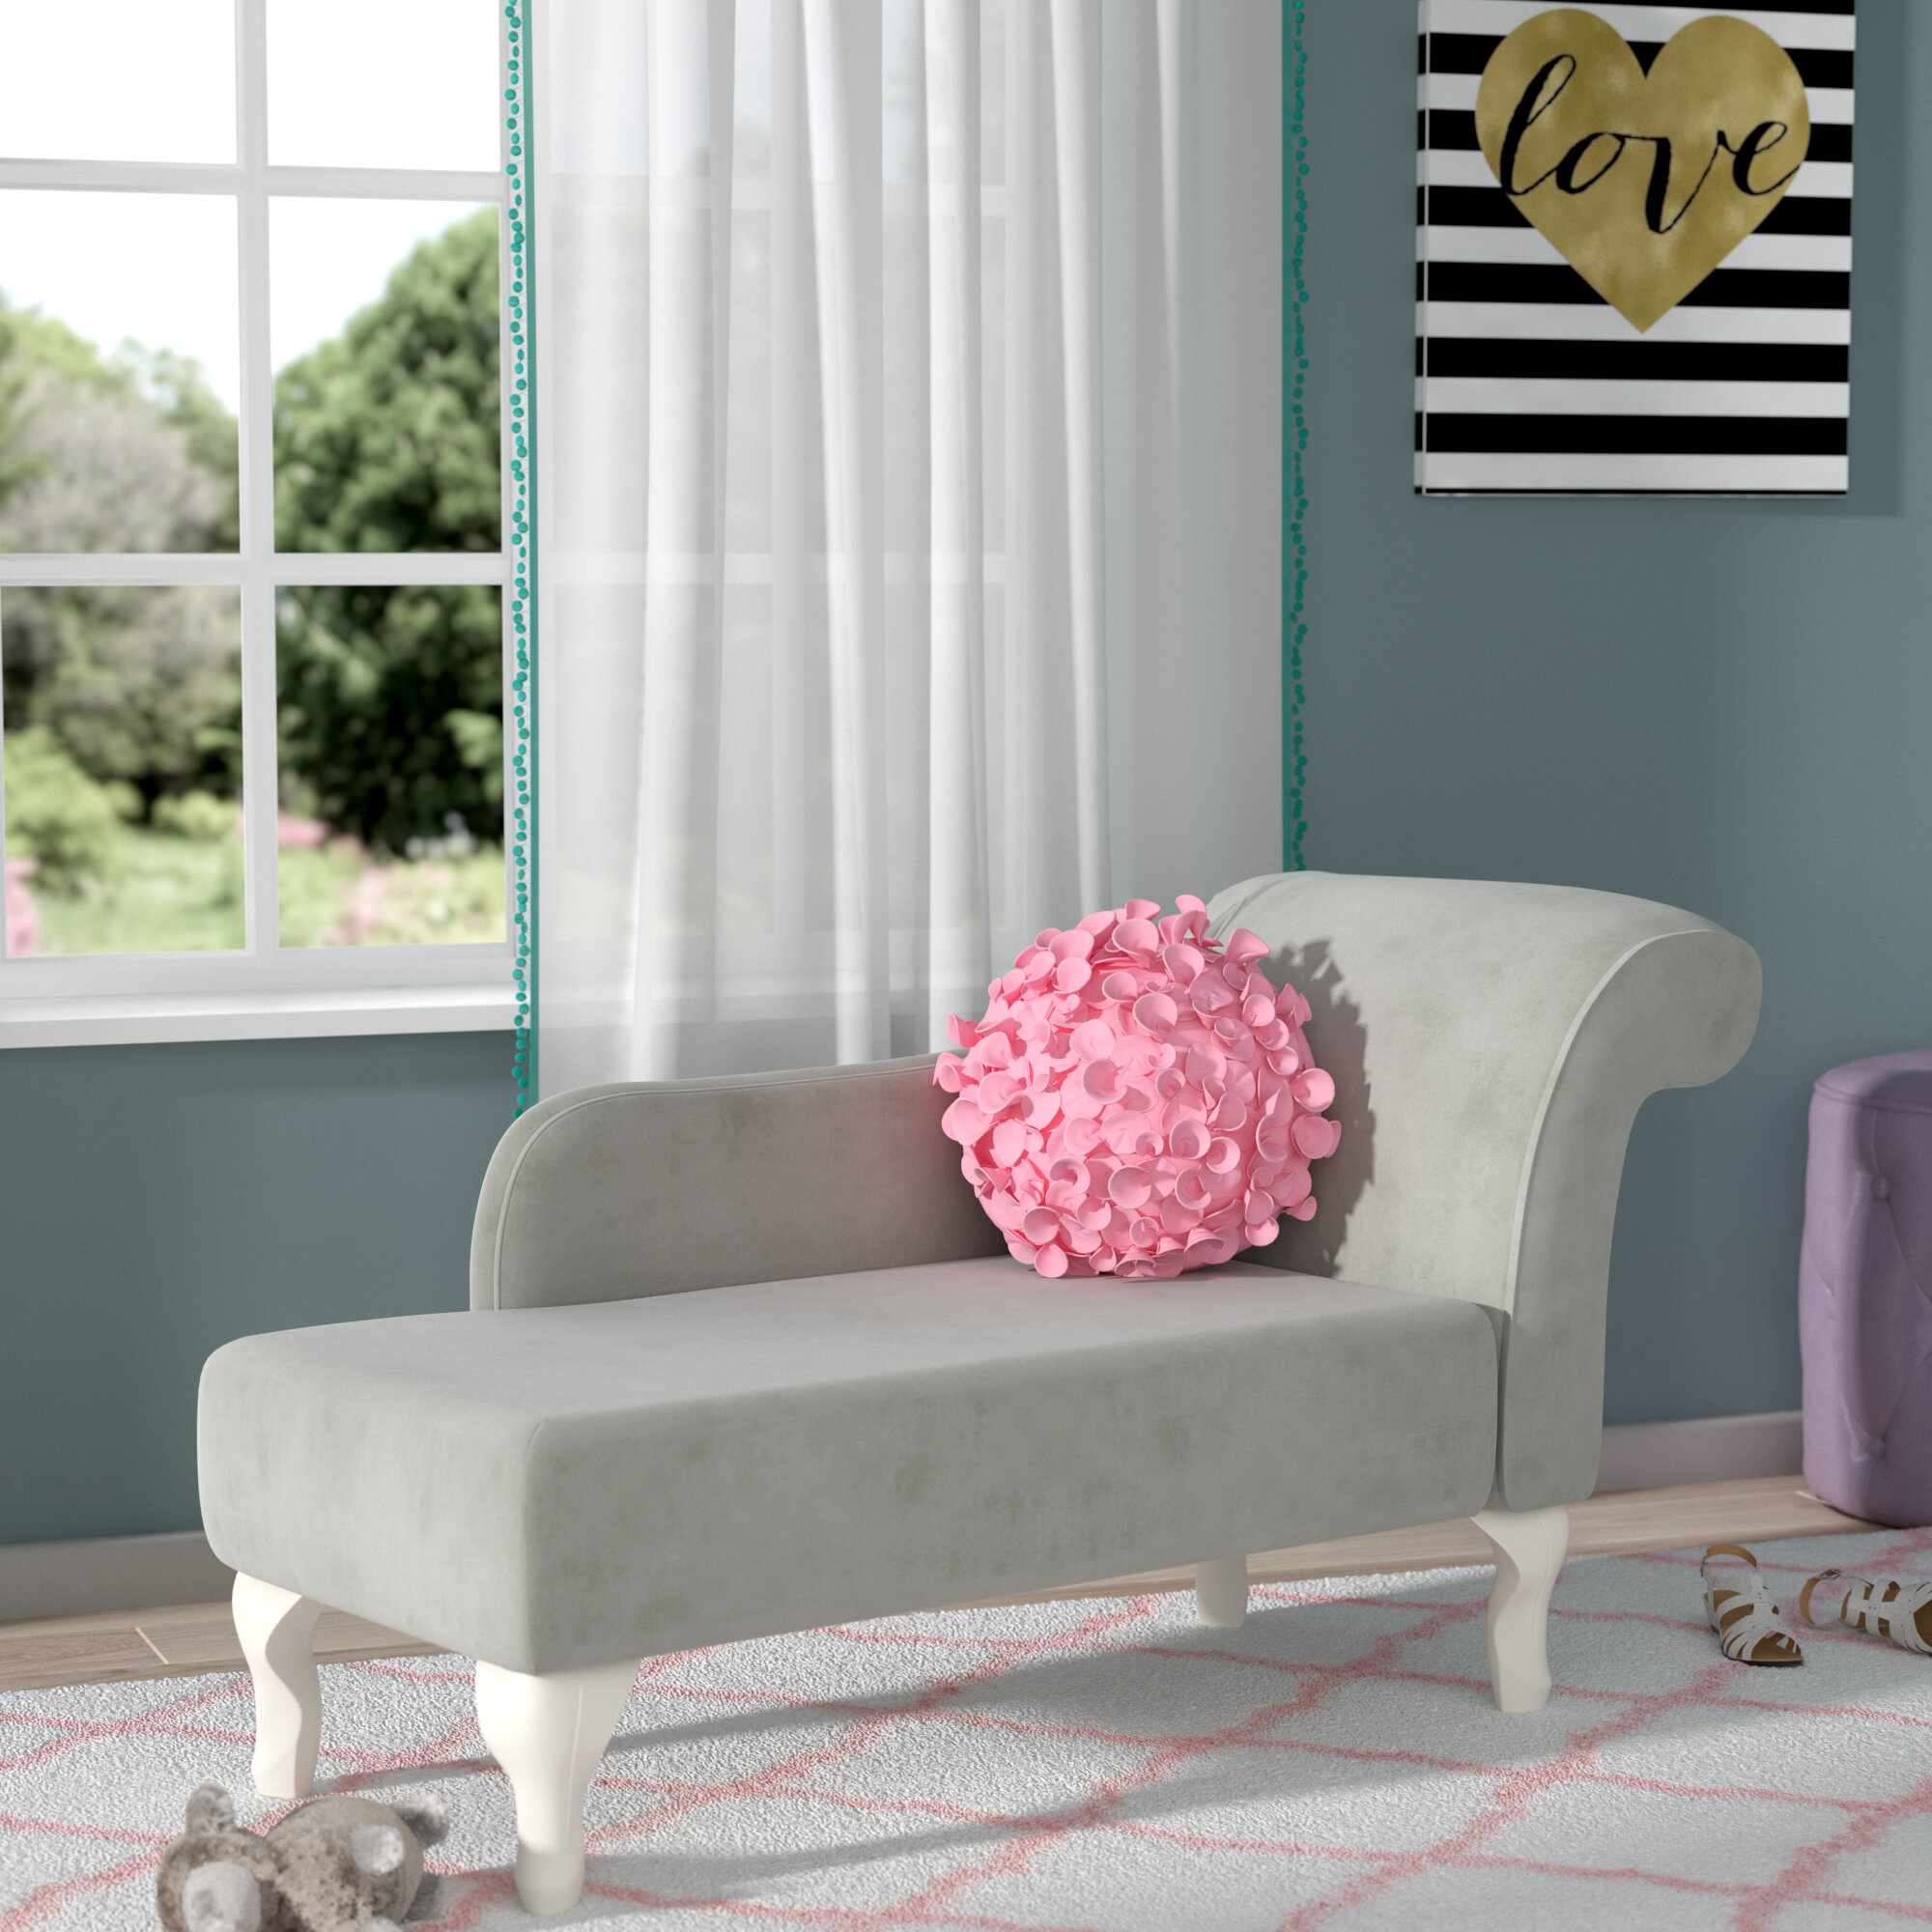 id velvet century furniture longues longue seating pink chaise salmon master at sale french f for in